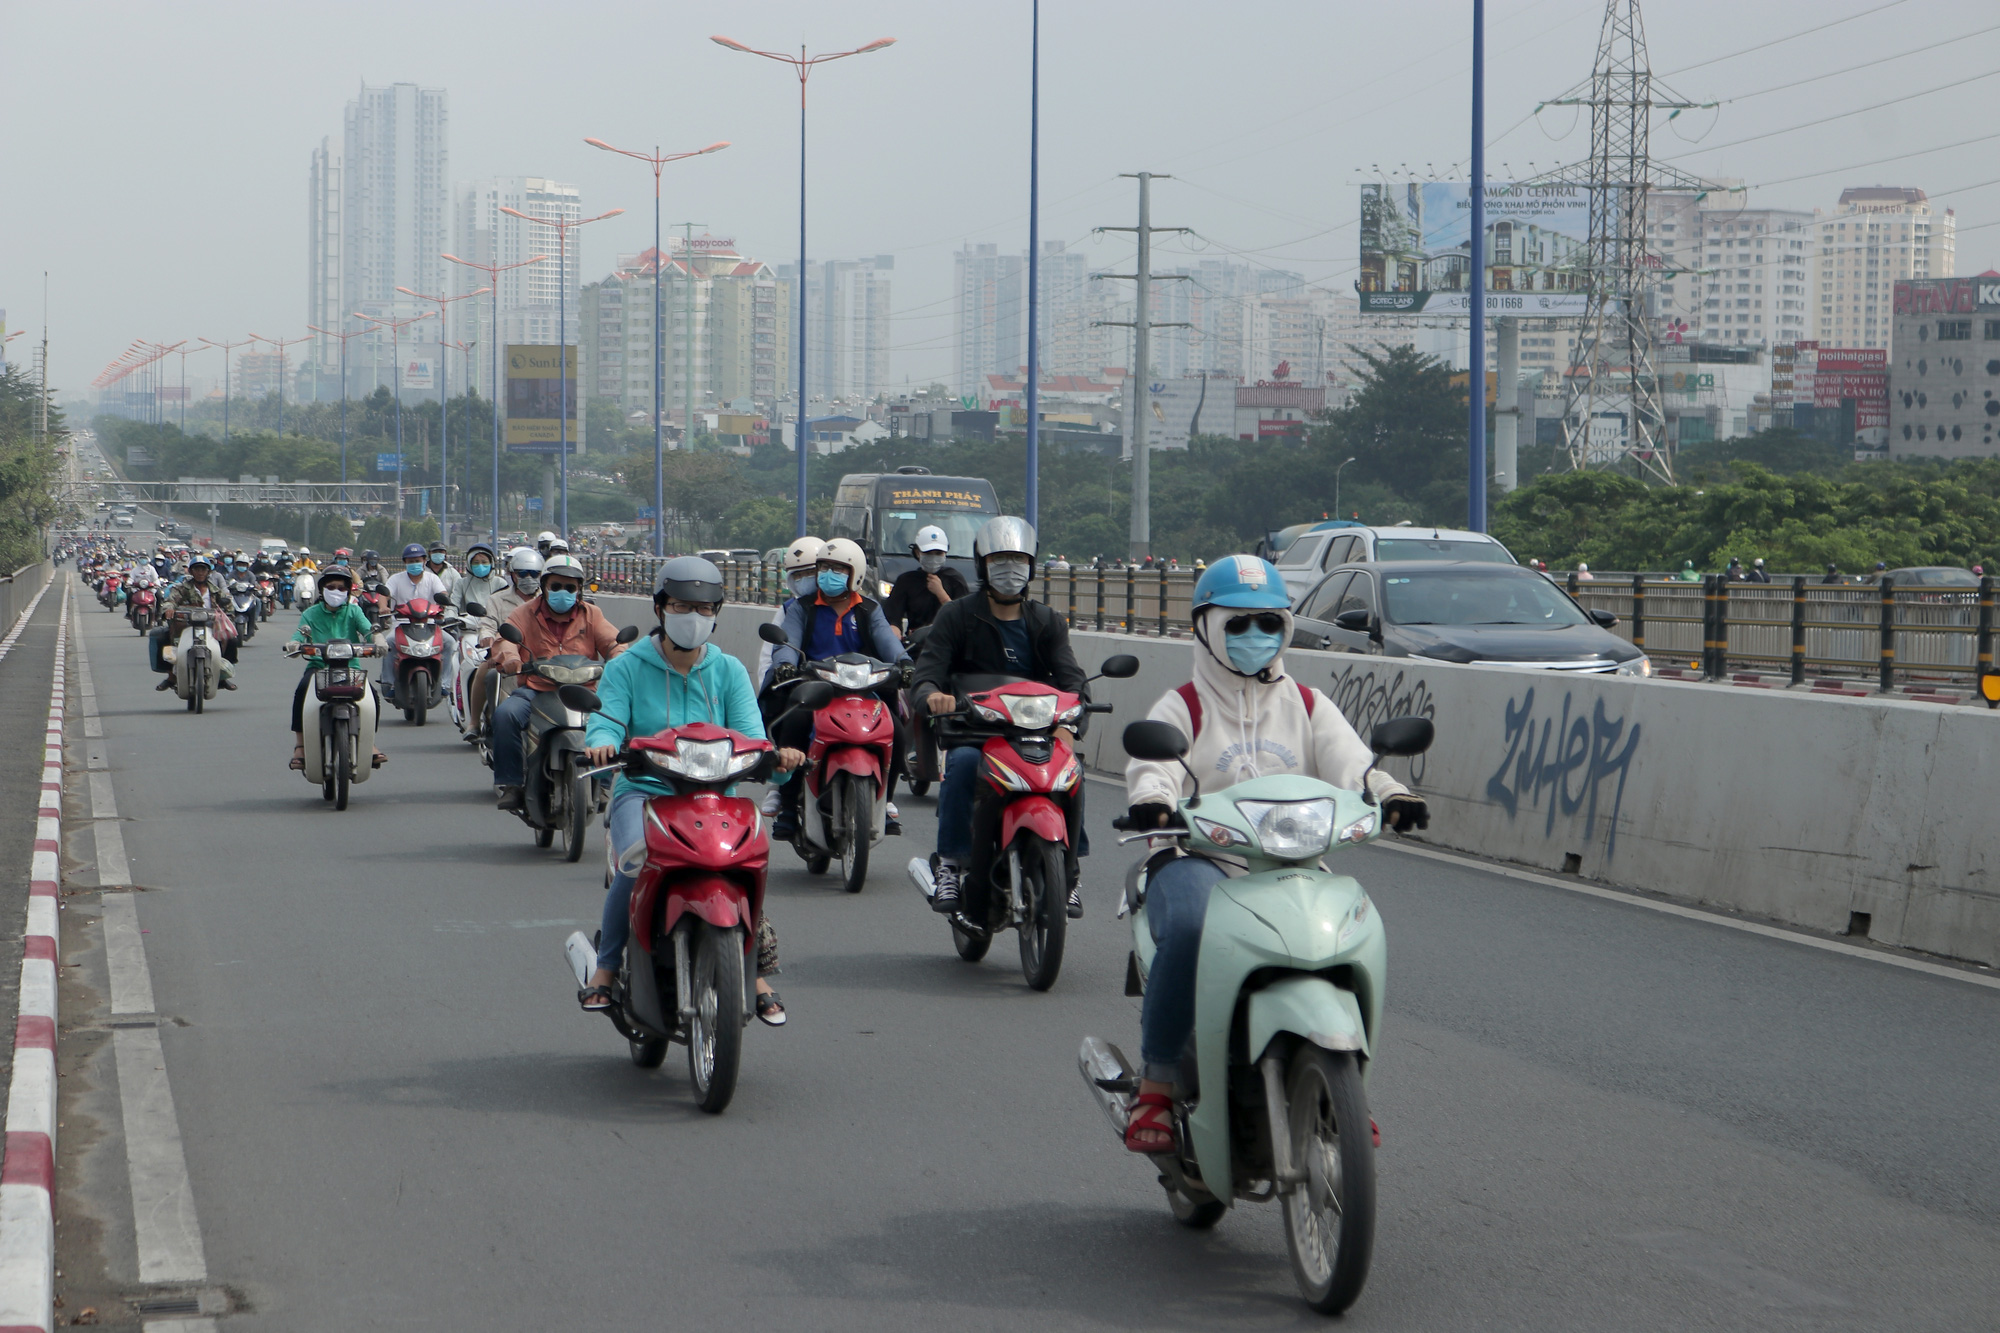 Vietnam's southern region gets hotter this weekend